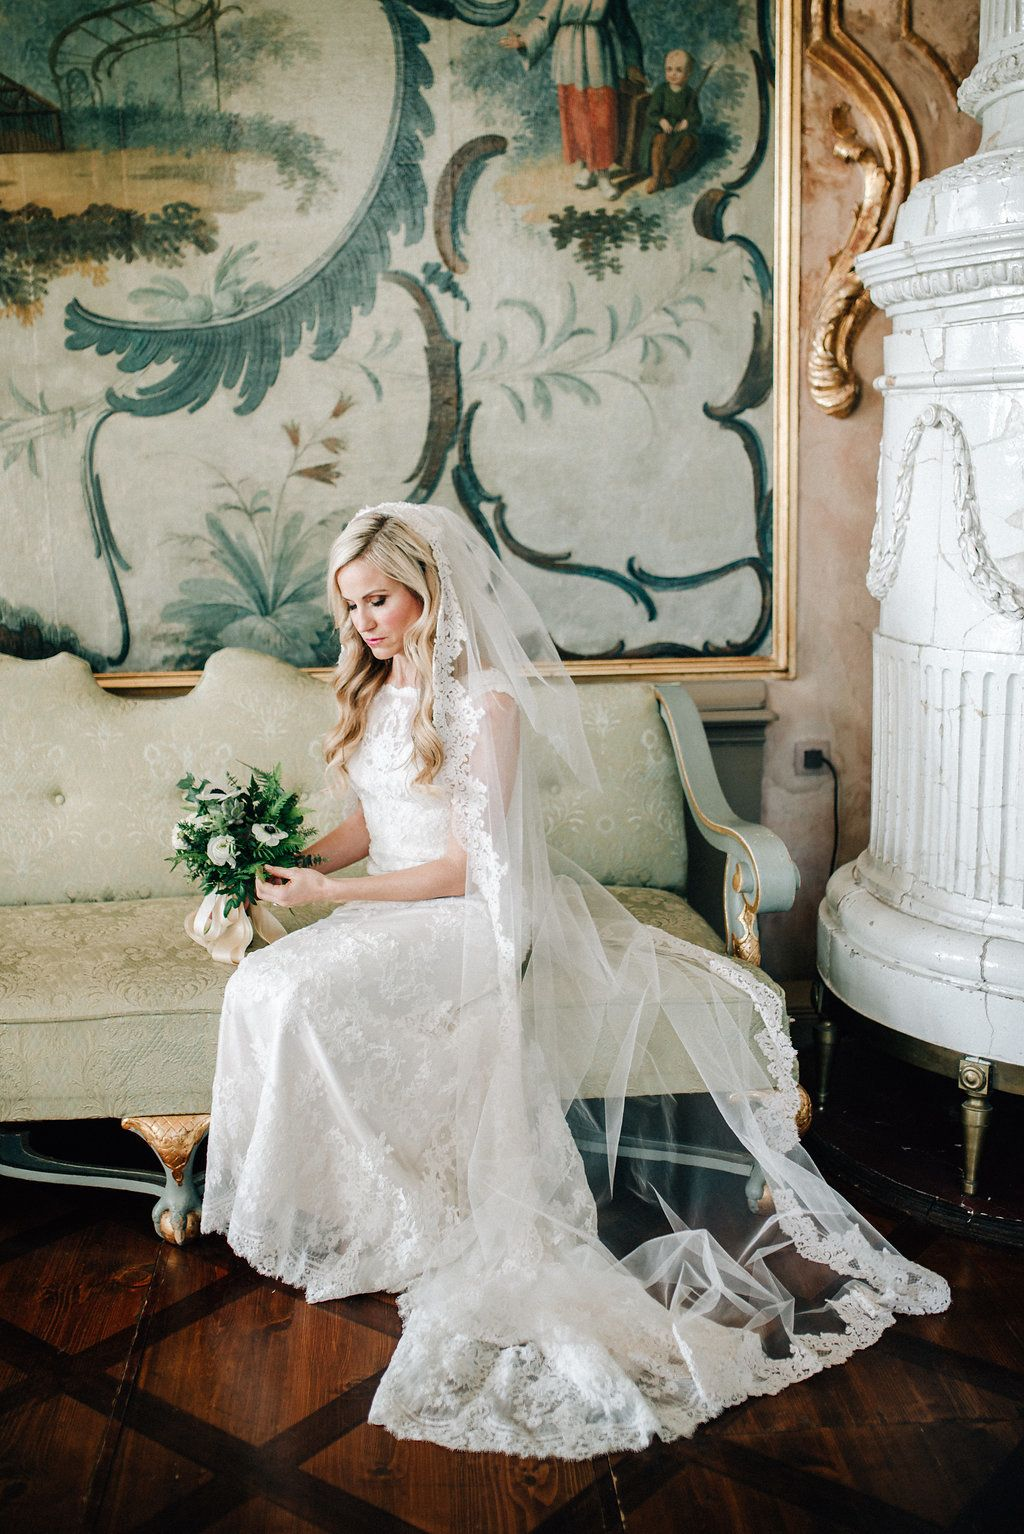 Sound of music wedding dress  From the Sound of Music to a Wildly Romantic Wedding Celebration